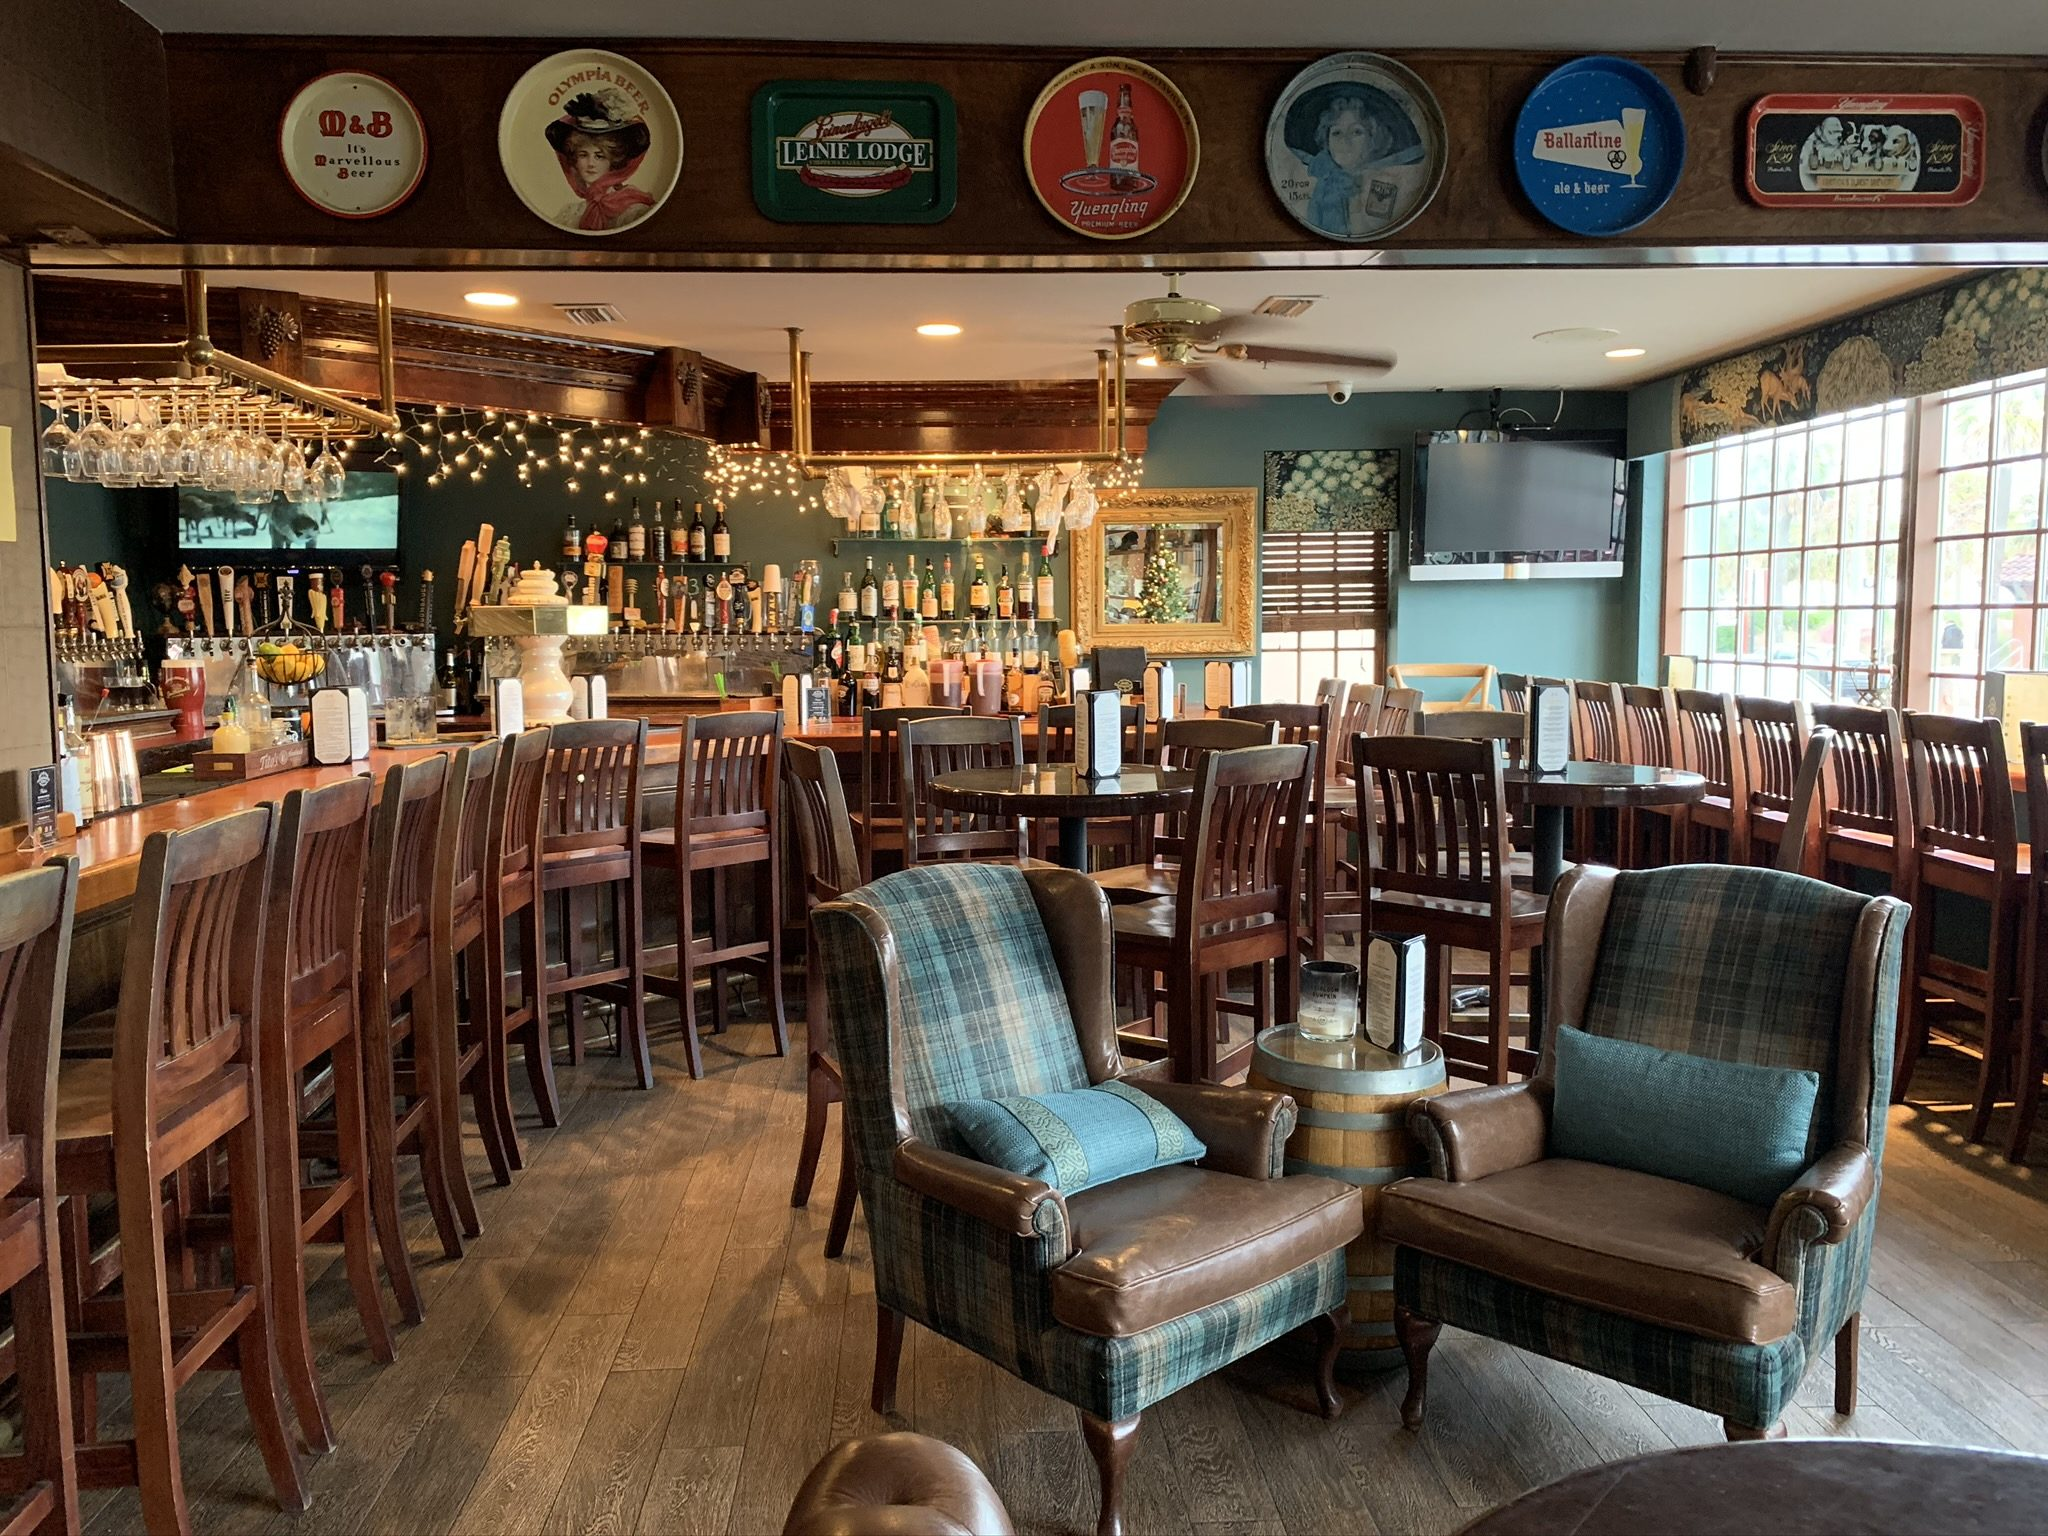 The Chatsworth Publick House and Tea Room